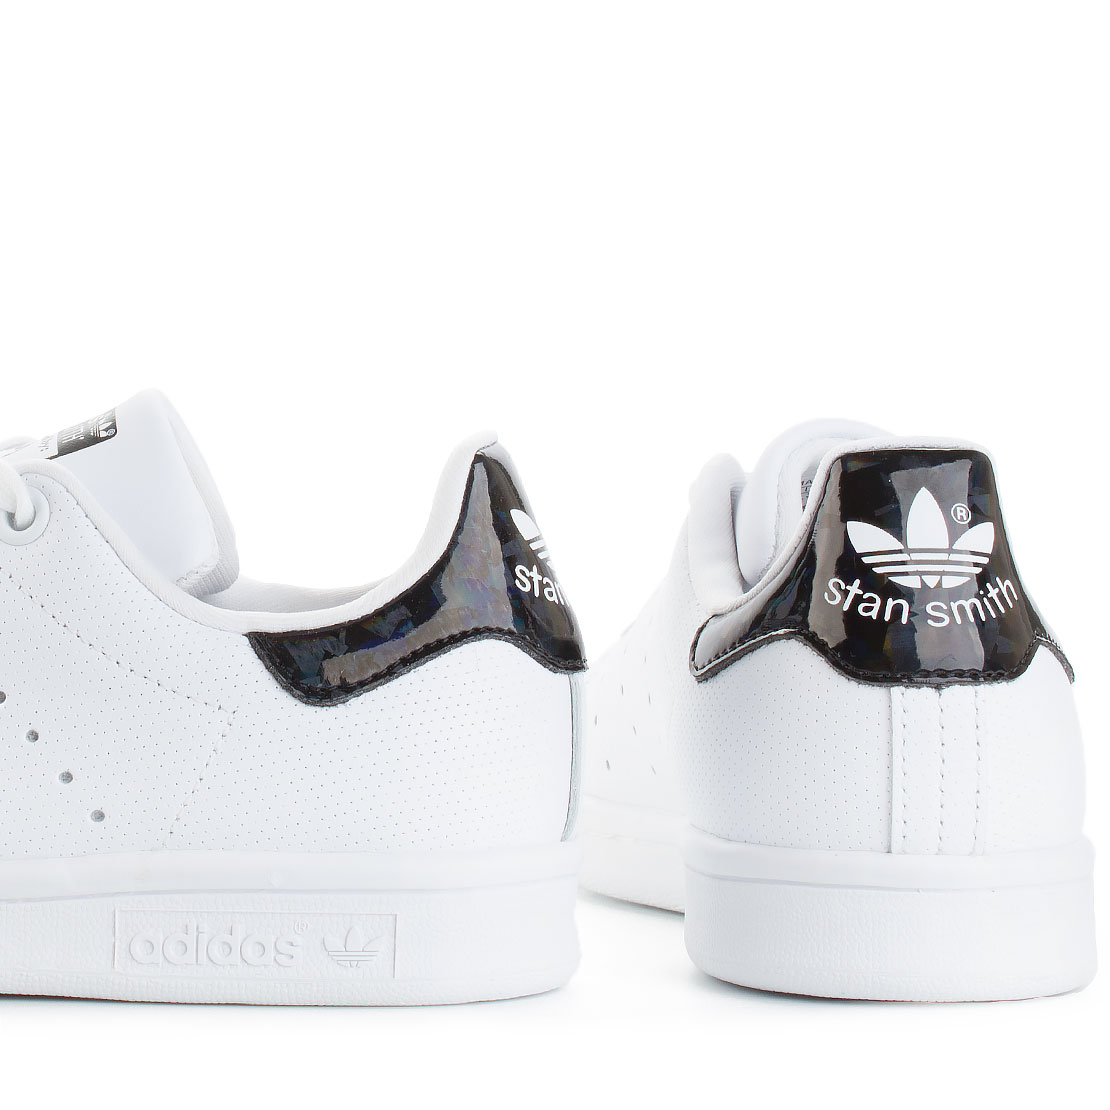 Alta qualit Adidas Stan Smith DB1206 vendita